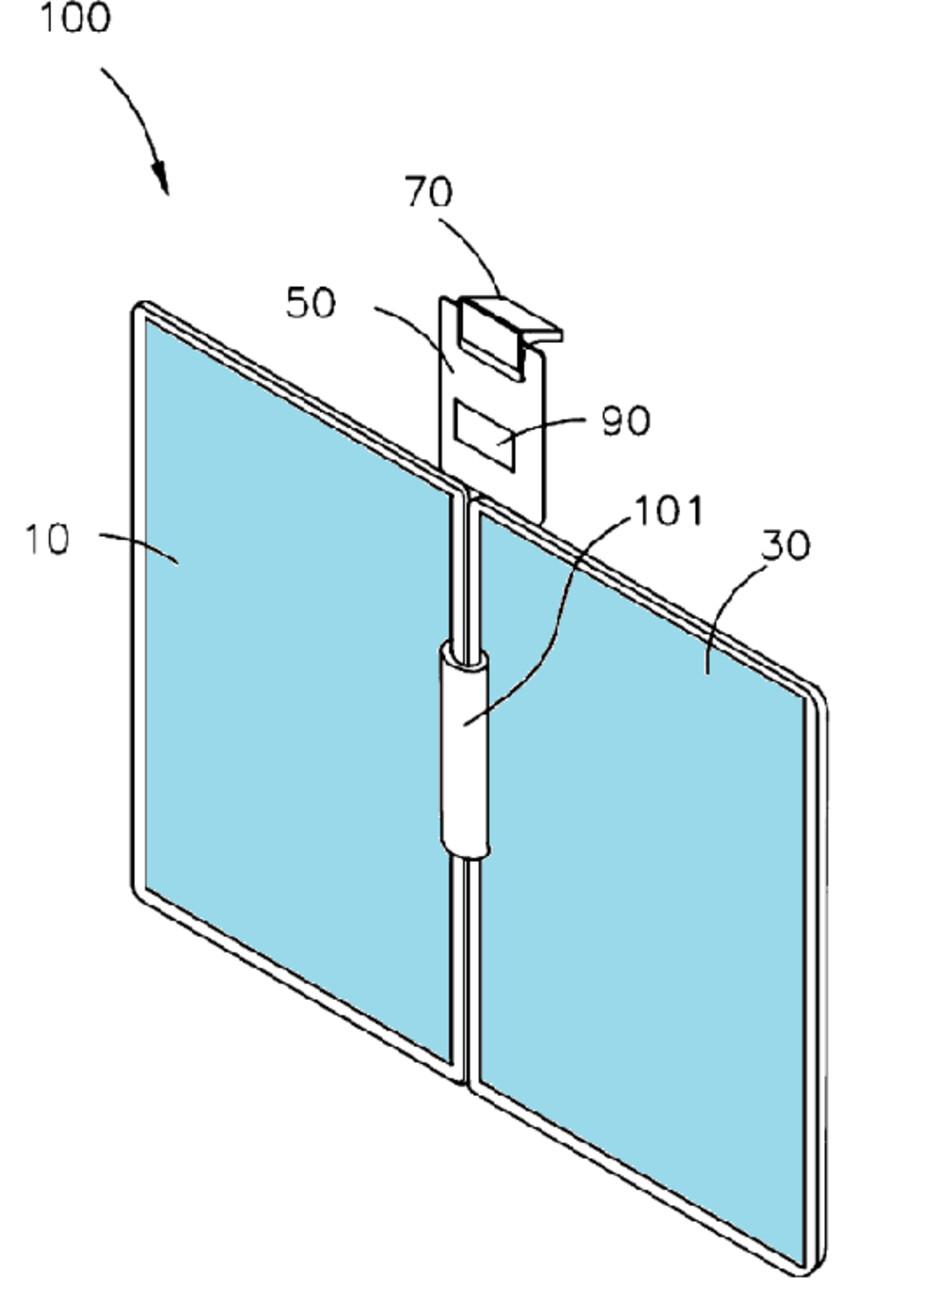 Another image from Oppo's patent application - A future OnePlus model could feature a pop-up display